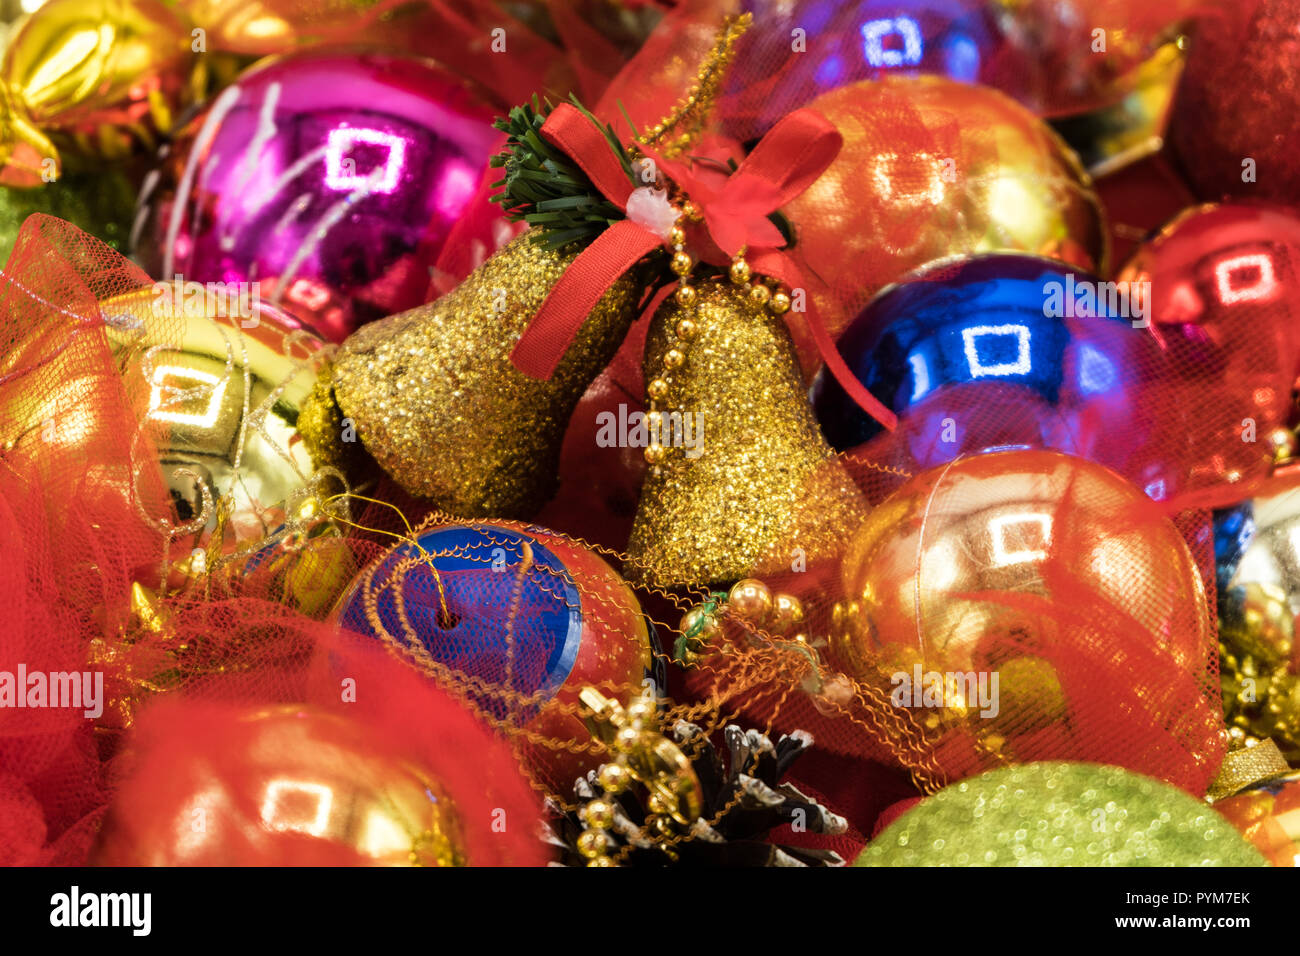 Christmas Vibrant Colorful Wallpaper Background Texture Of